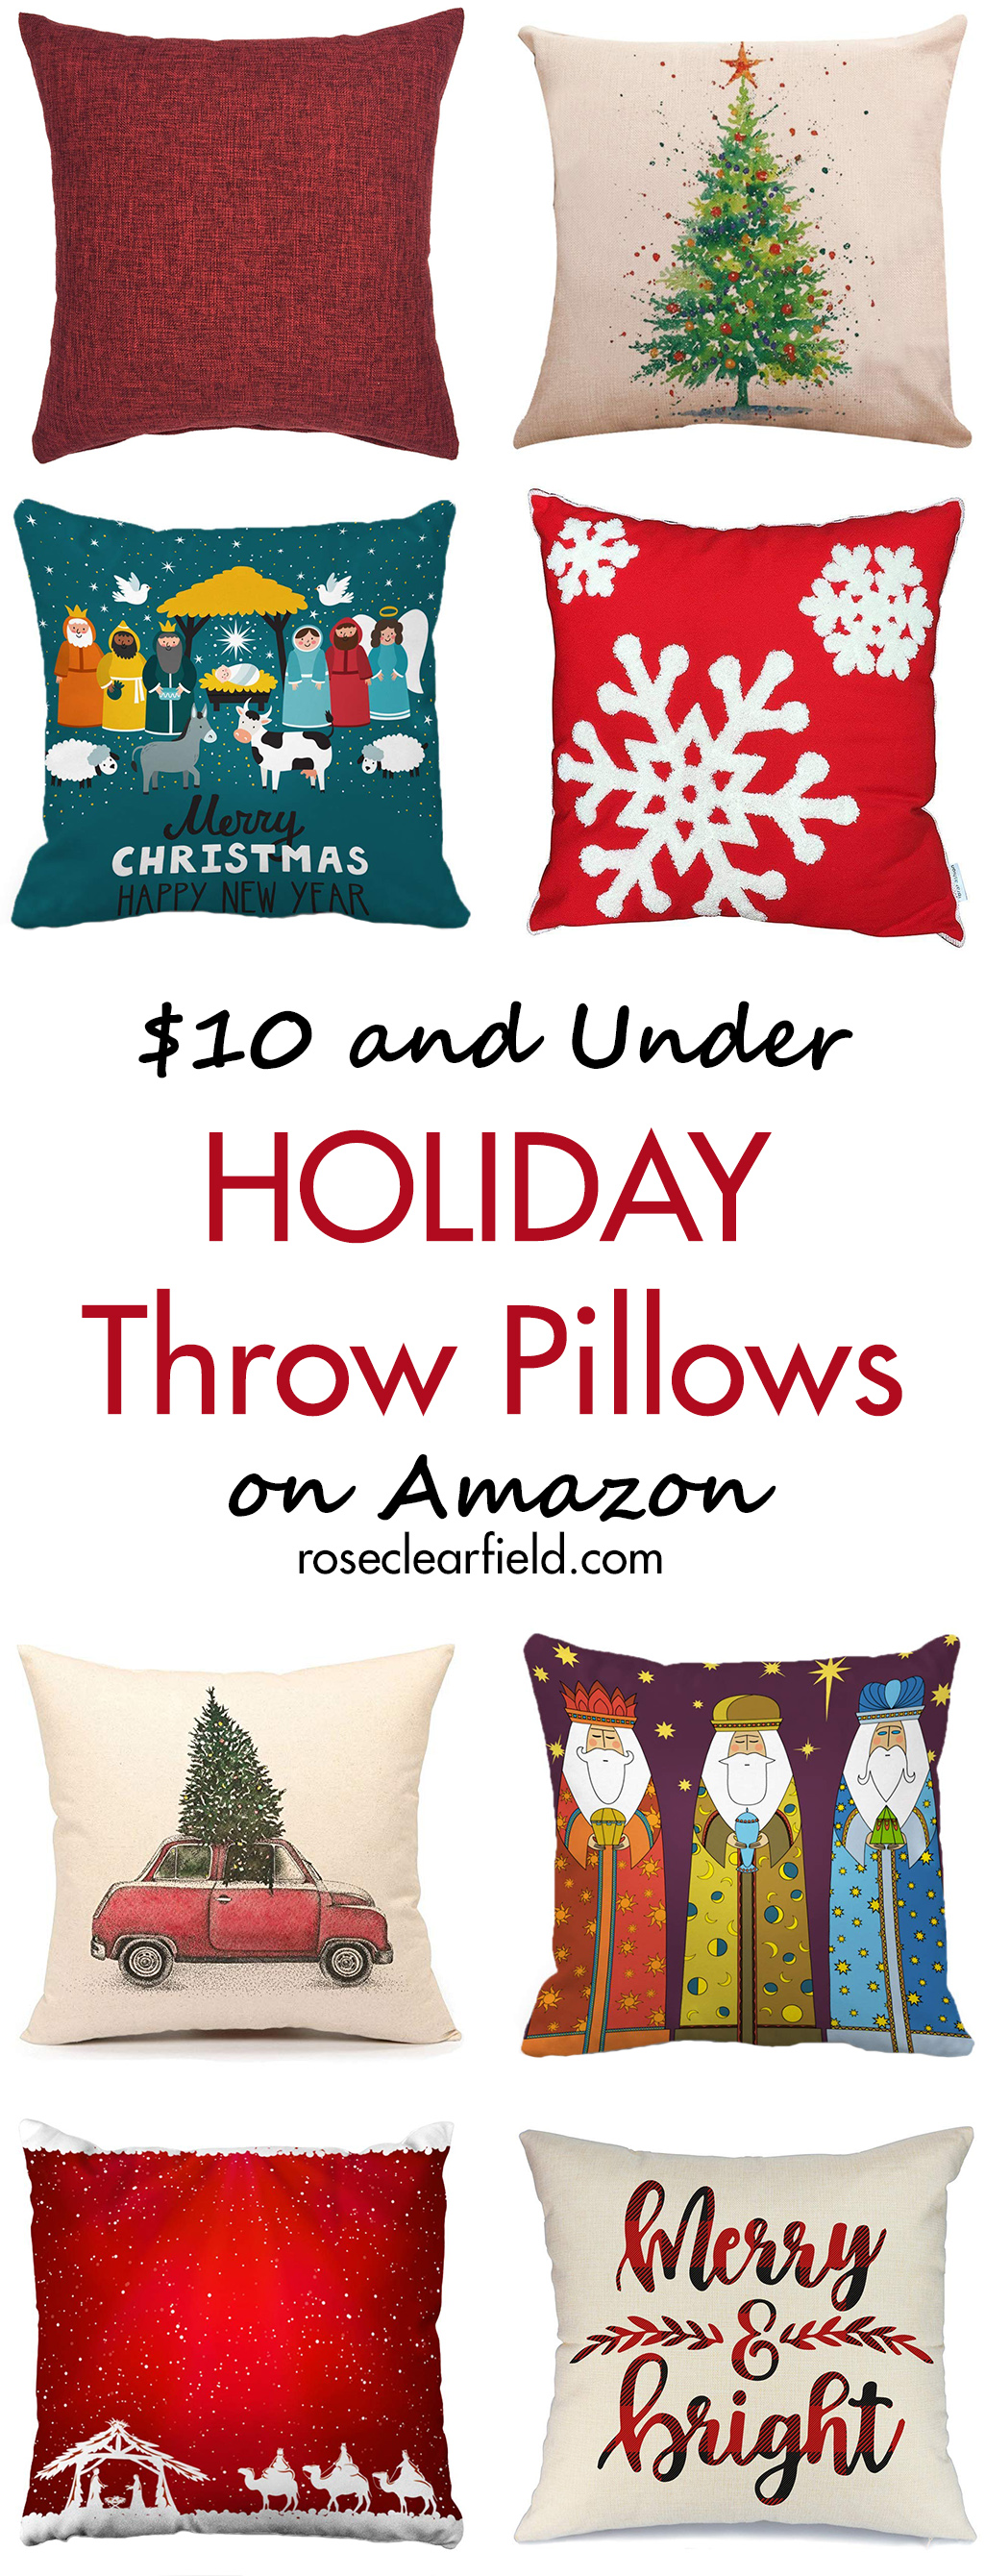 $10 and Under Holiday Throw Pillows on Amazon | https://www.roseclearfield.com